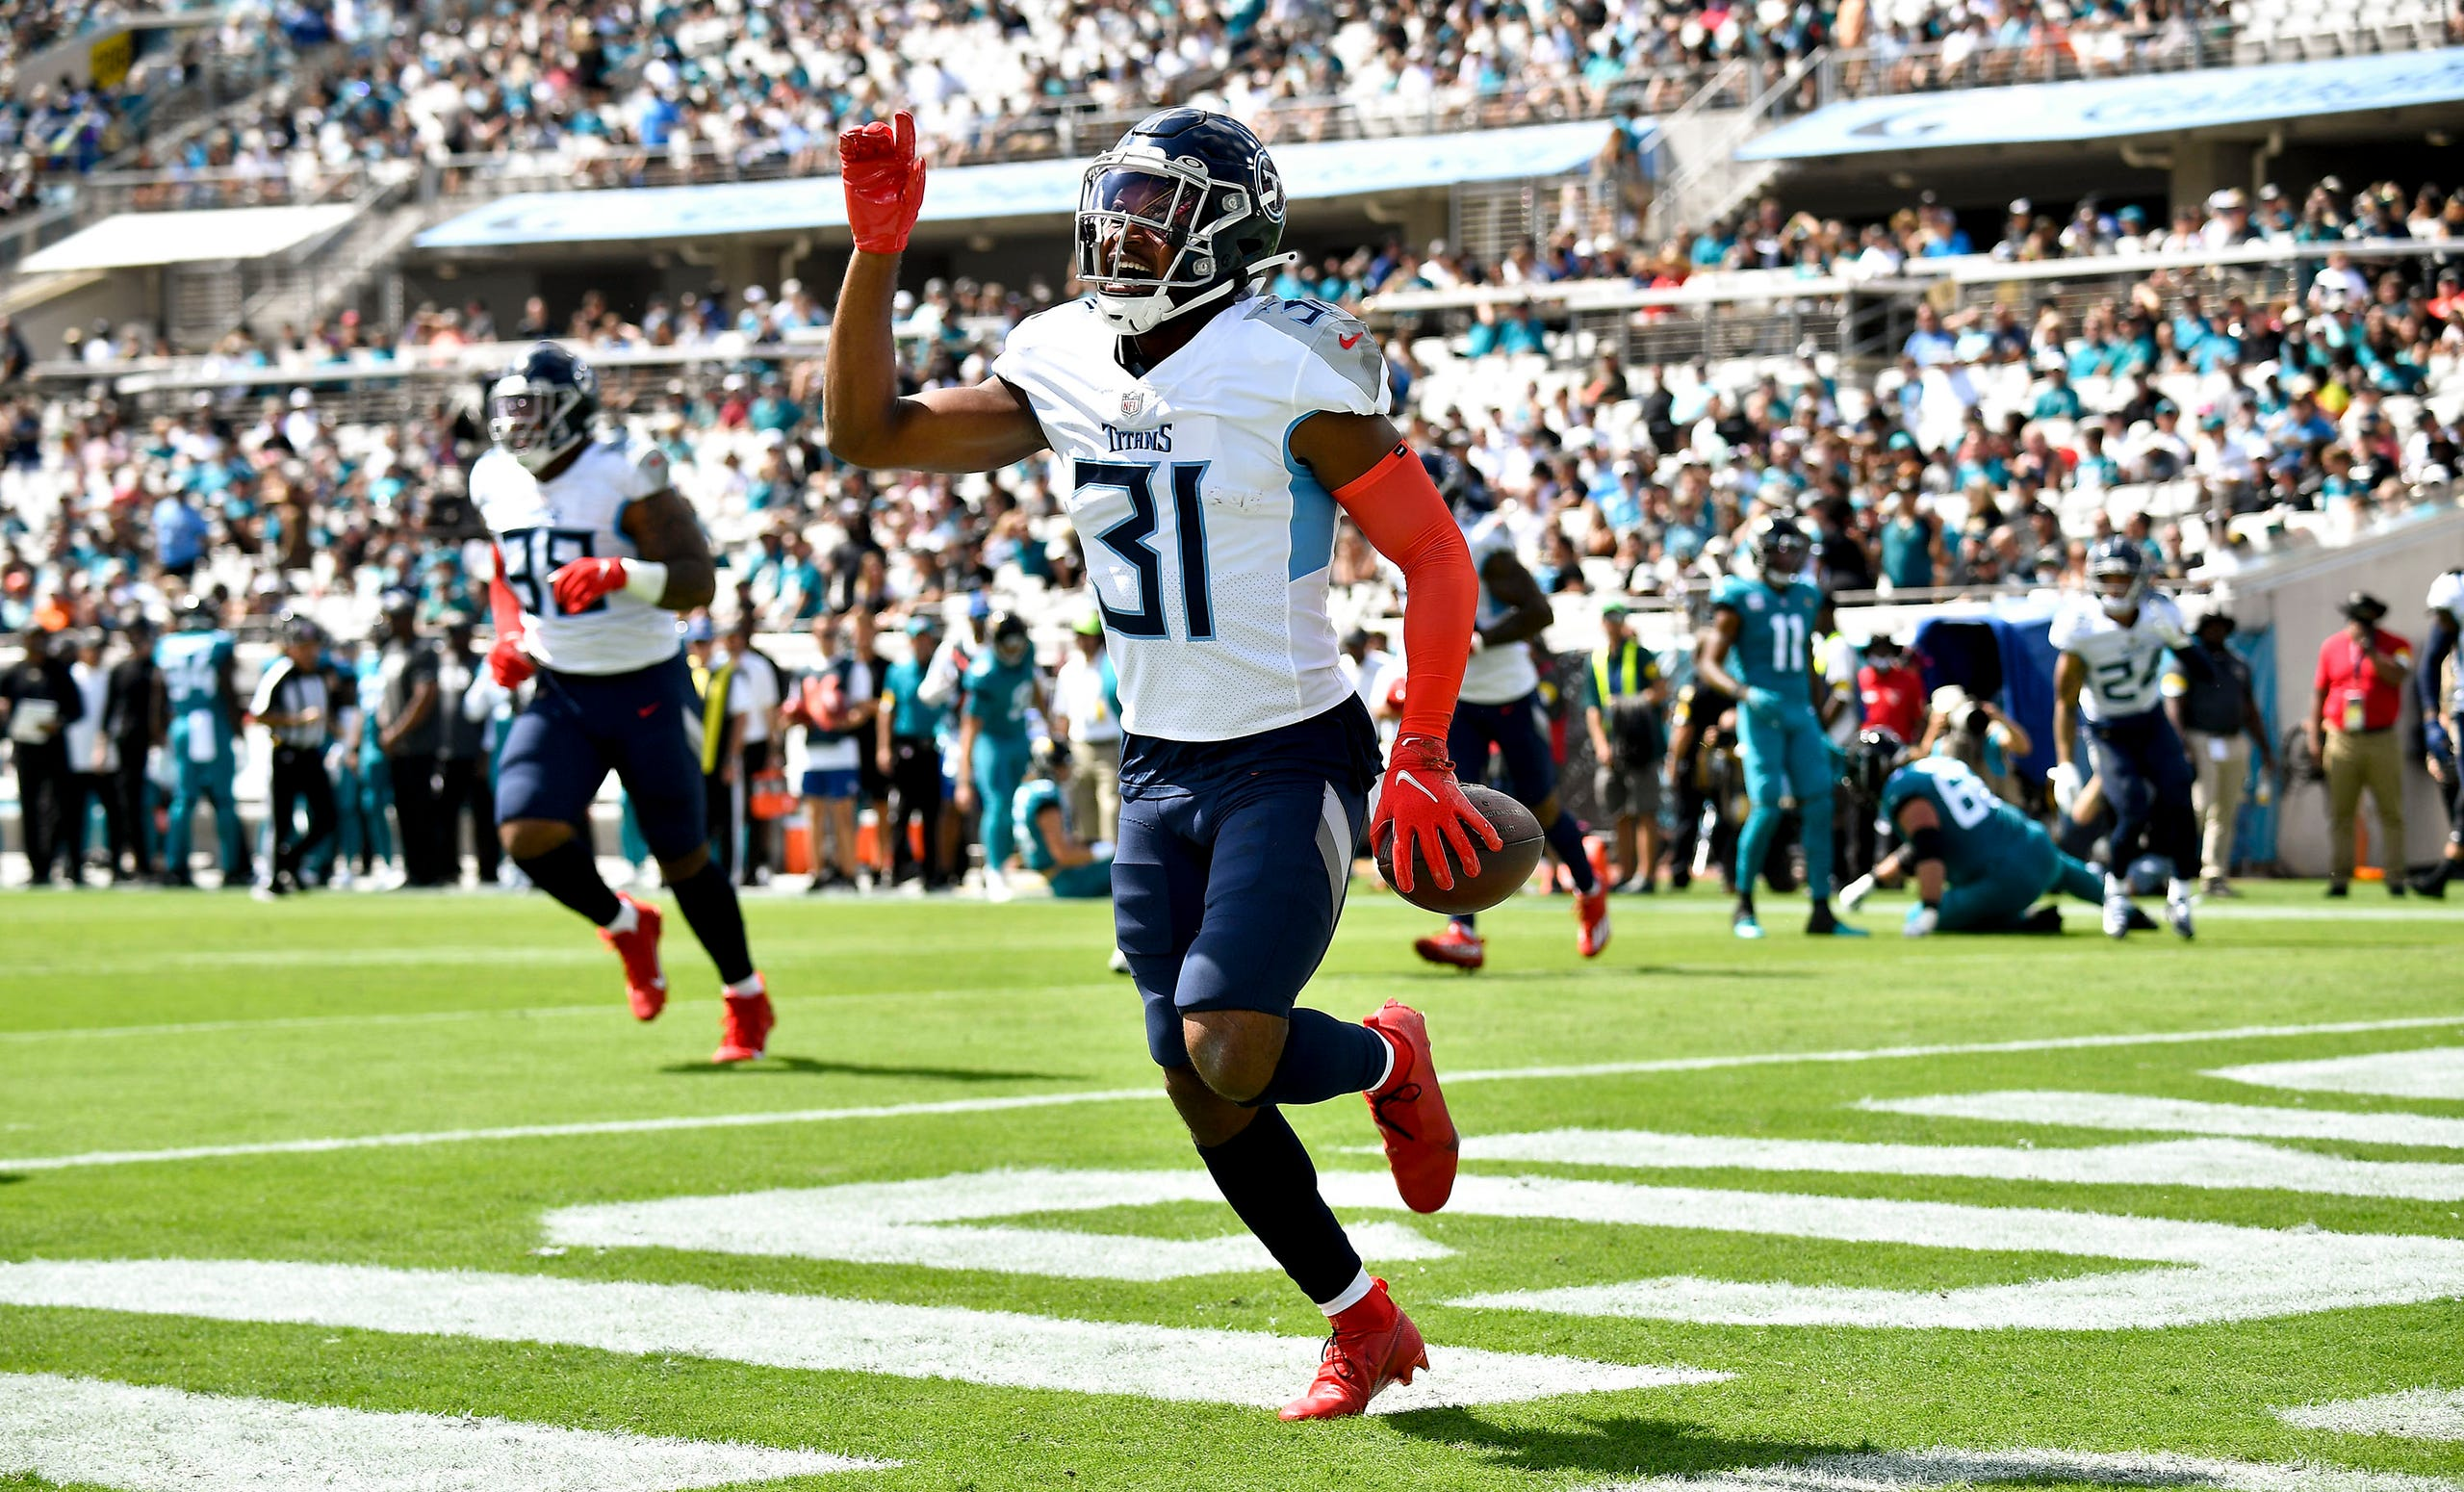 Tennessee Titans free safety Kevin Byard (31) scores a touchdown after recovering a fumble during the first quarter of the game at TIAA Bank Field Sunday, Oct. 10, 2021 in Jacksonville, Fla.